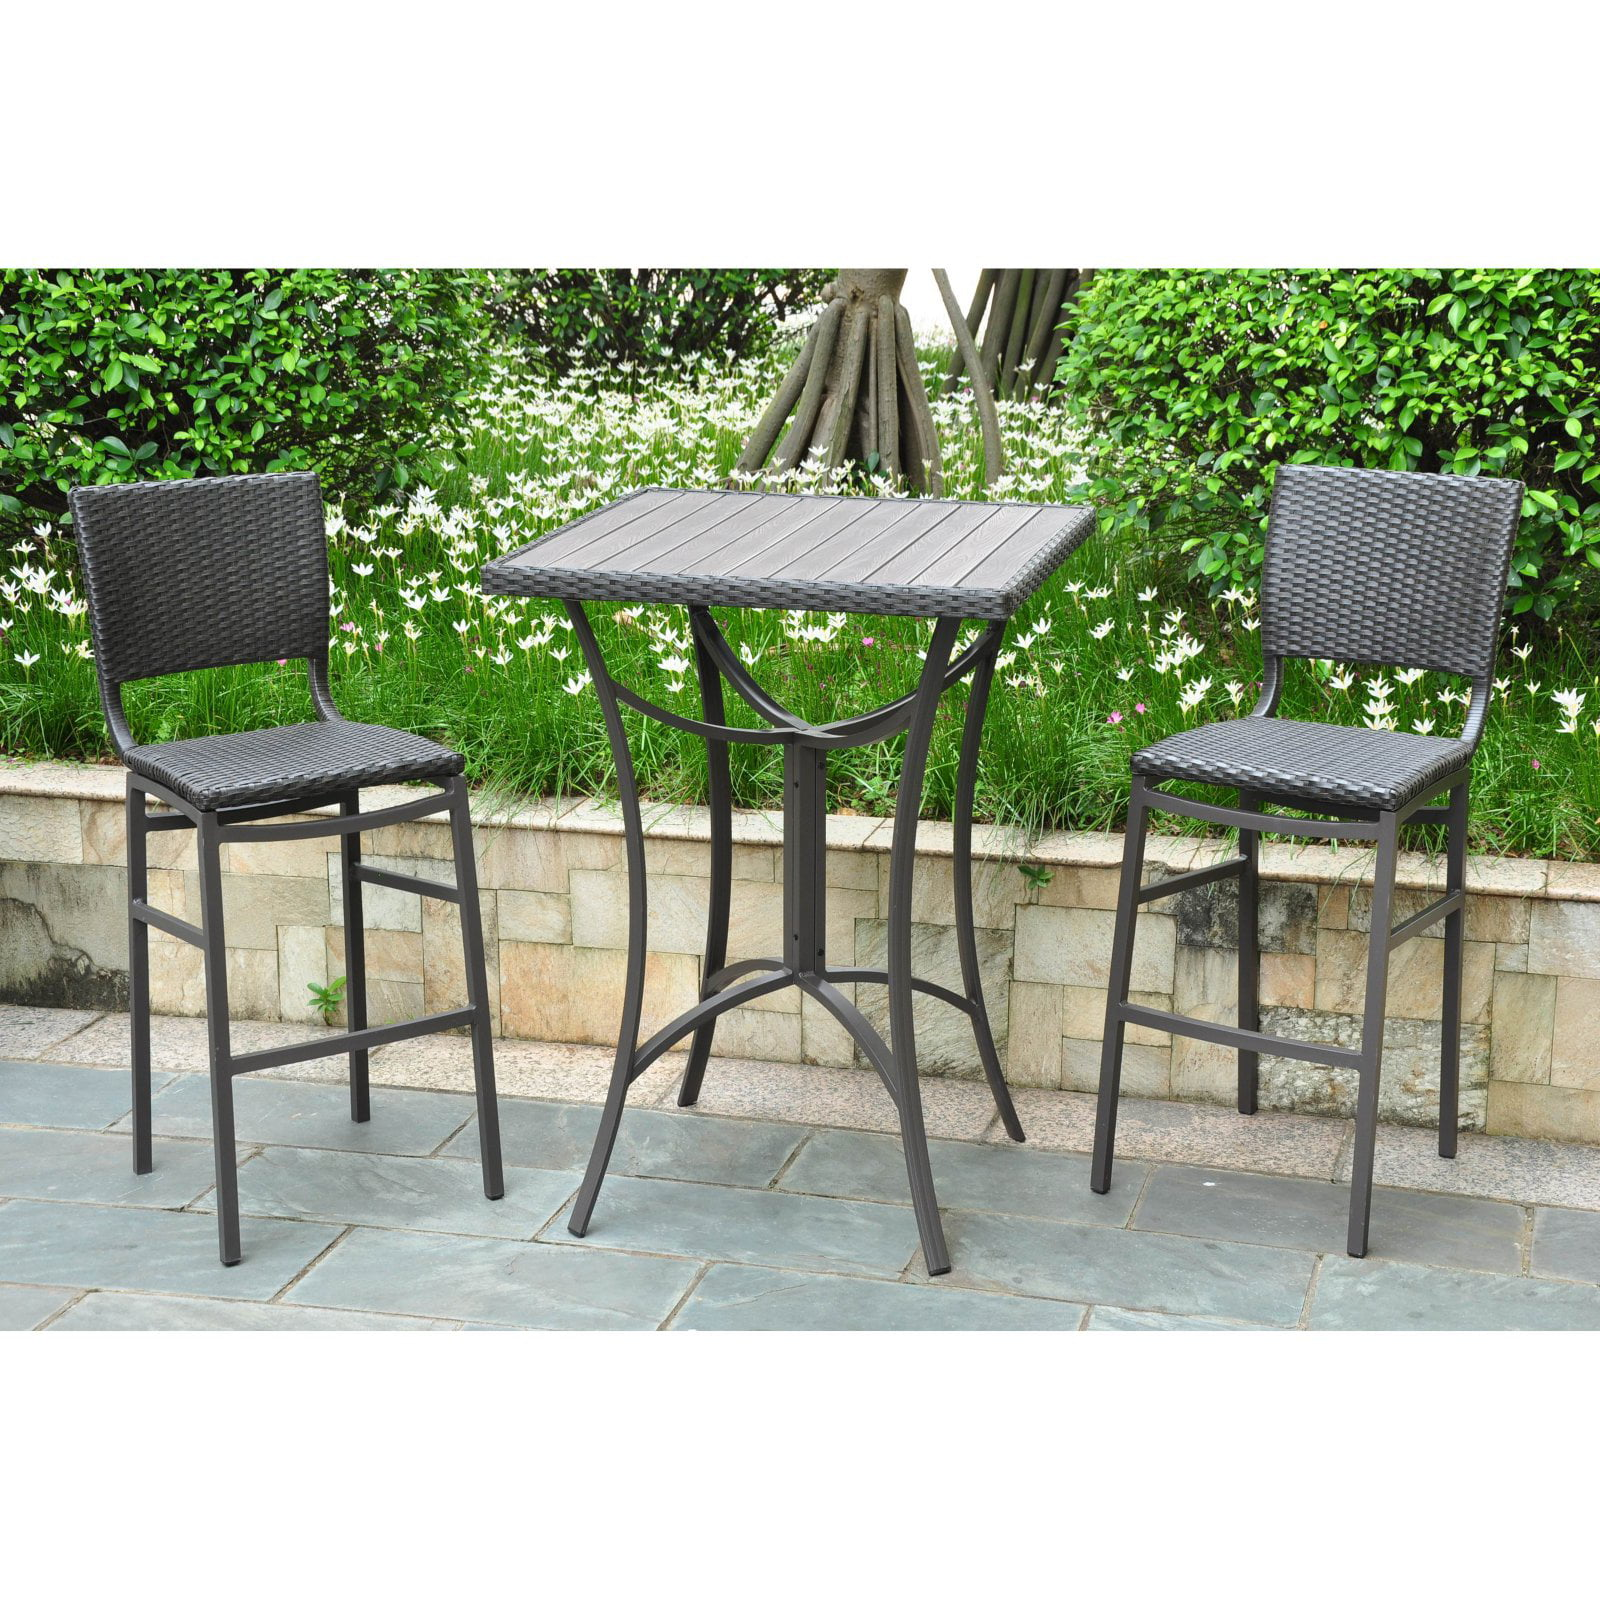 International caravan barcelona resin wicker bar height bistro set walmart com